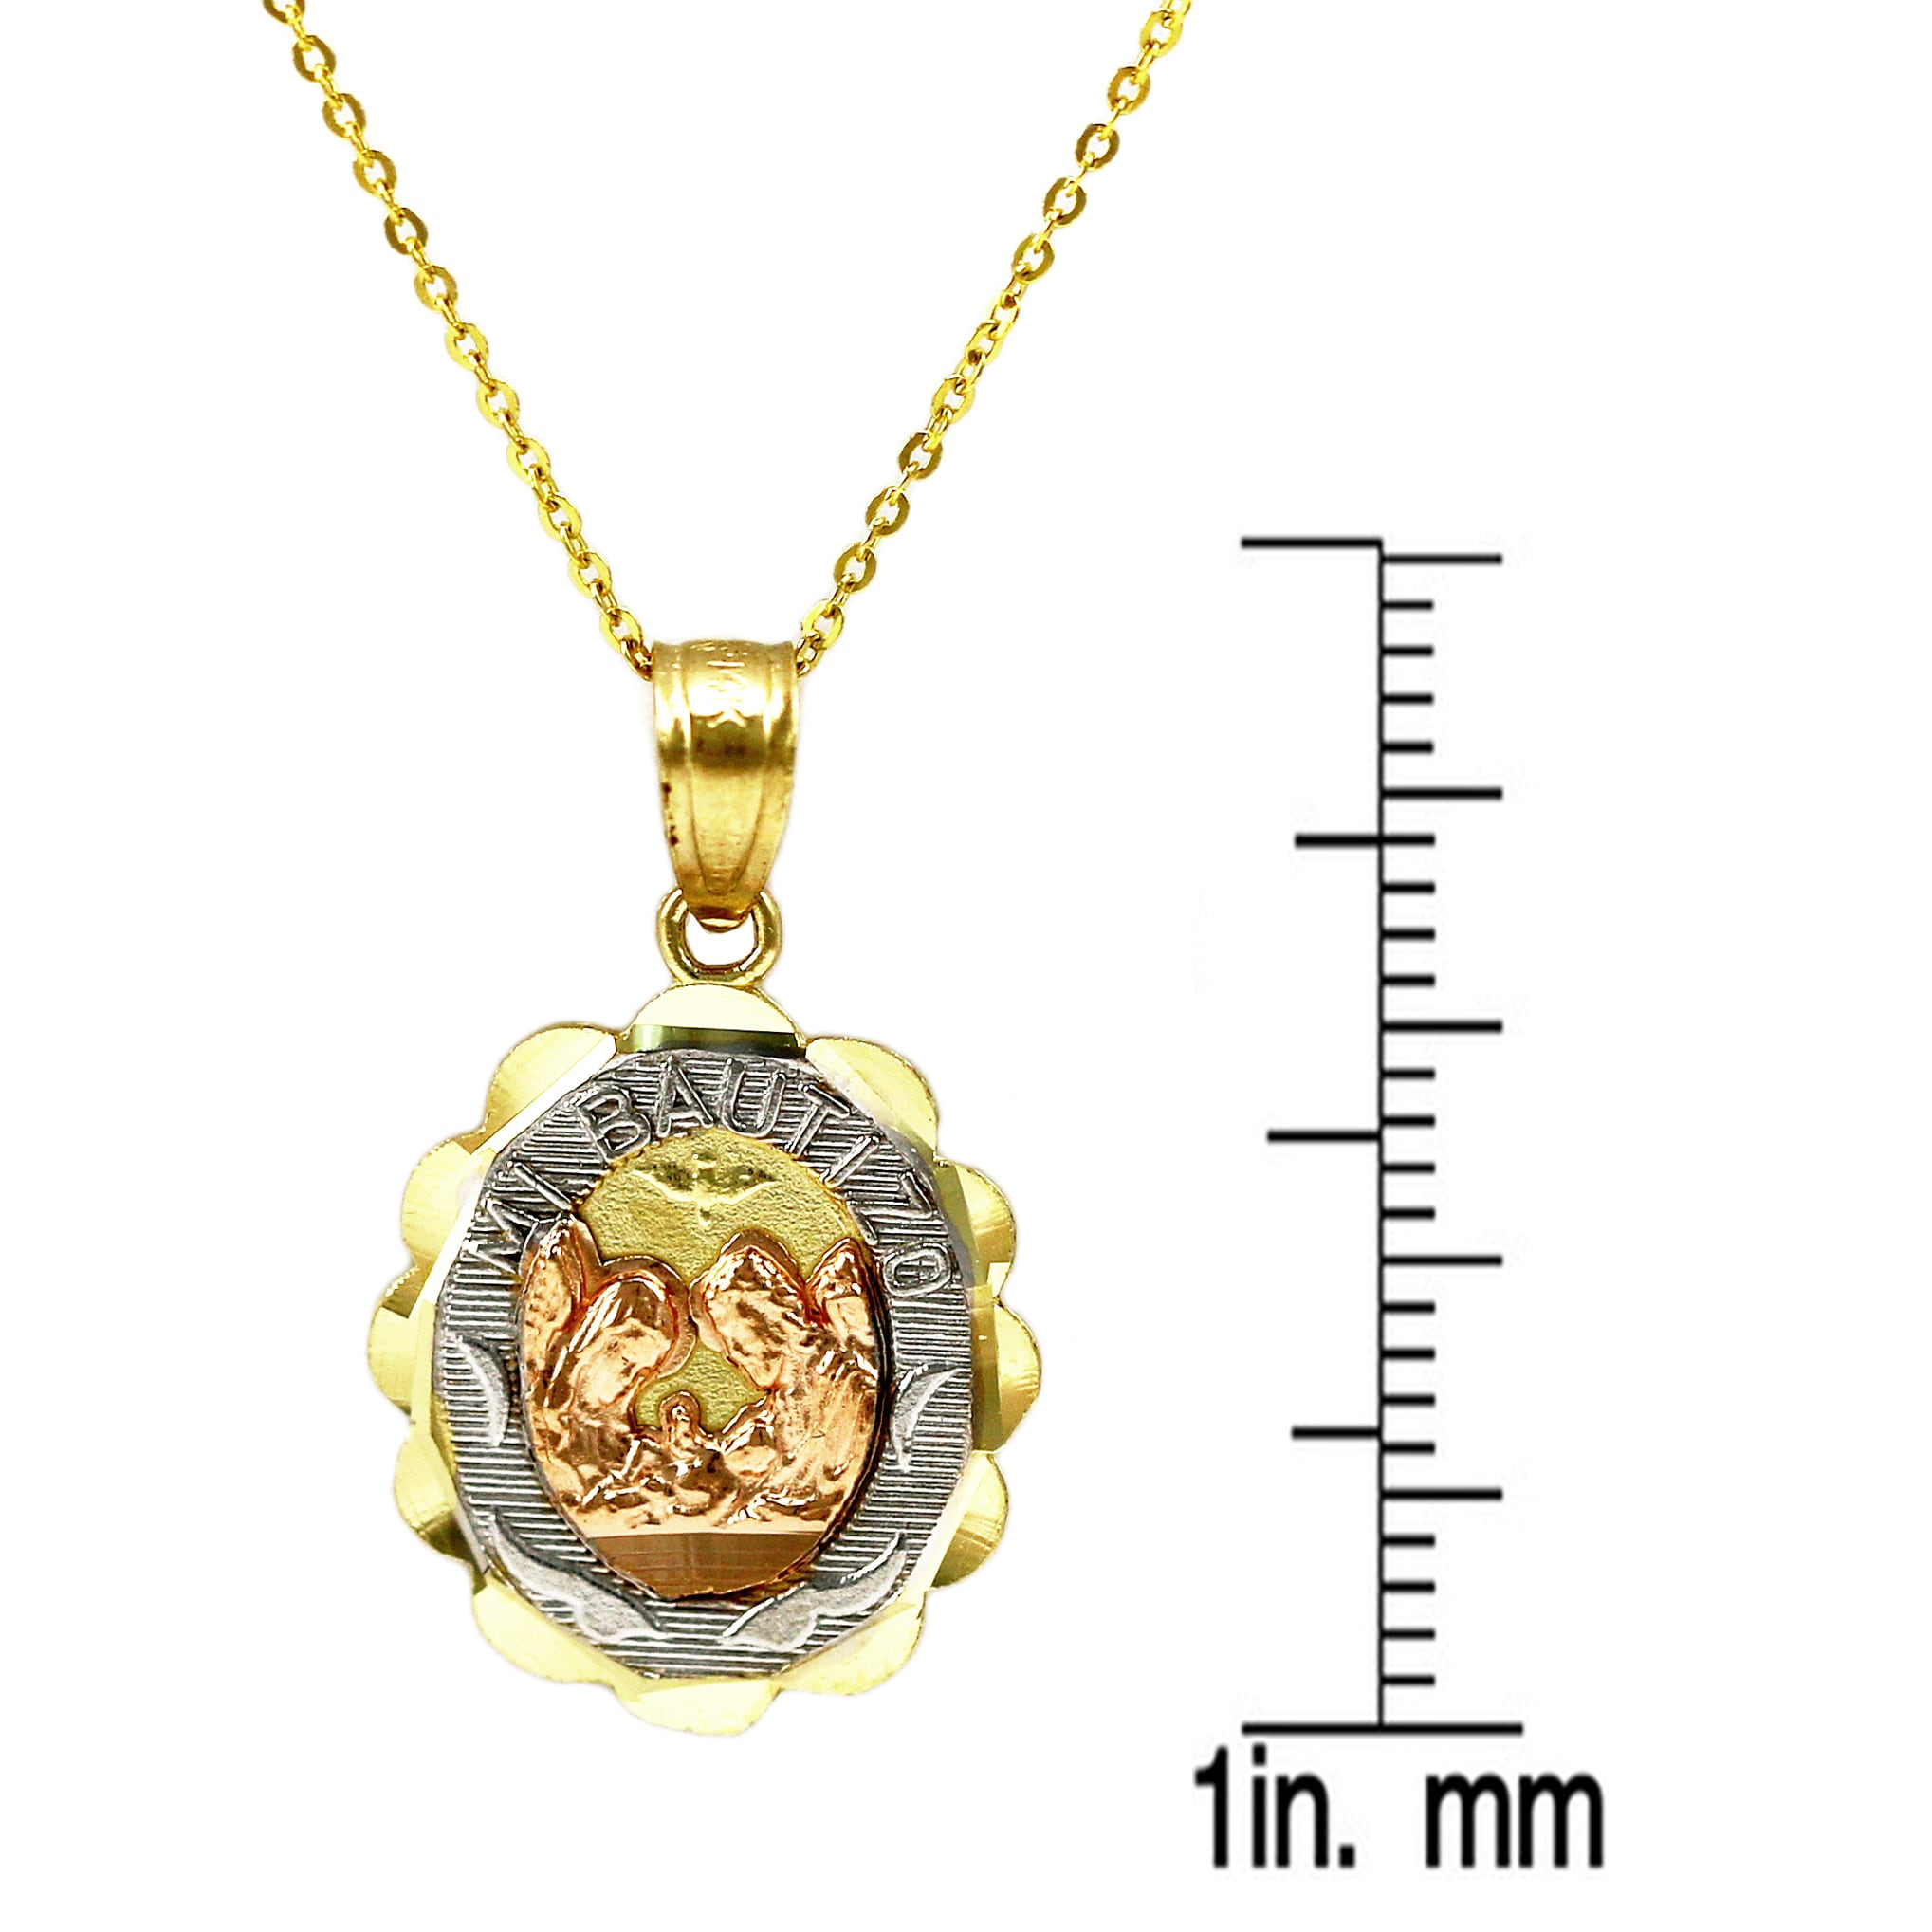 zoom necklace baptism gift jewelry adult fullxfull listing pendant il